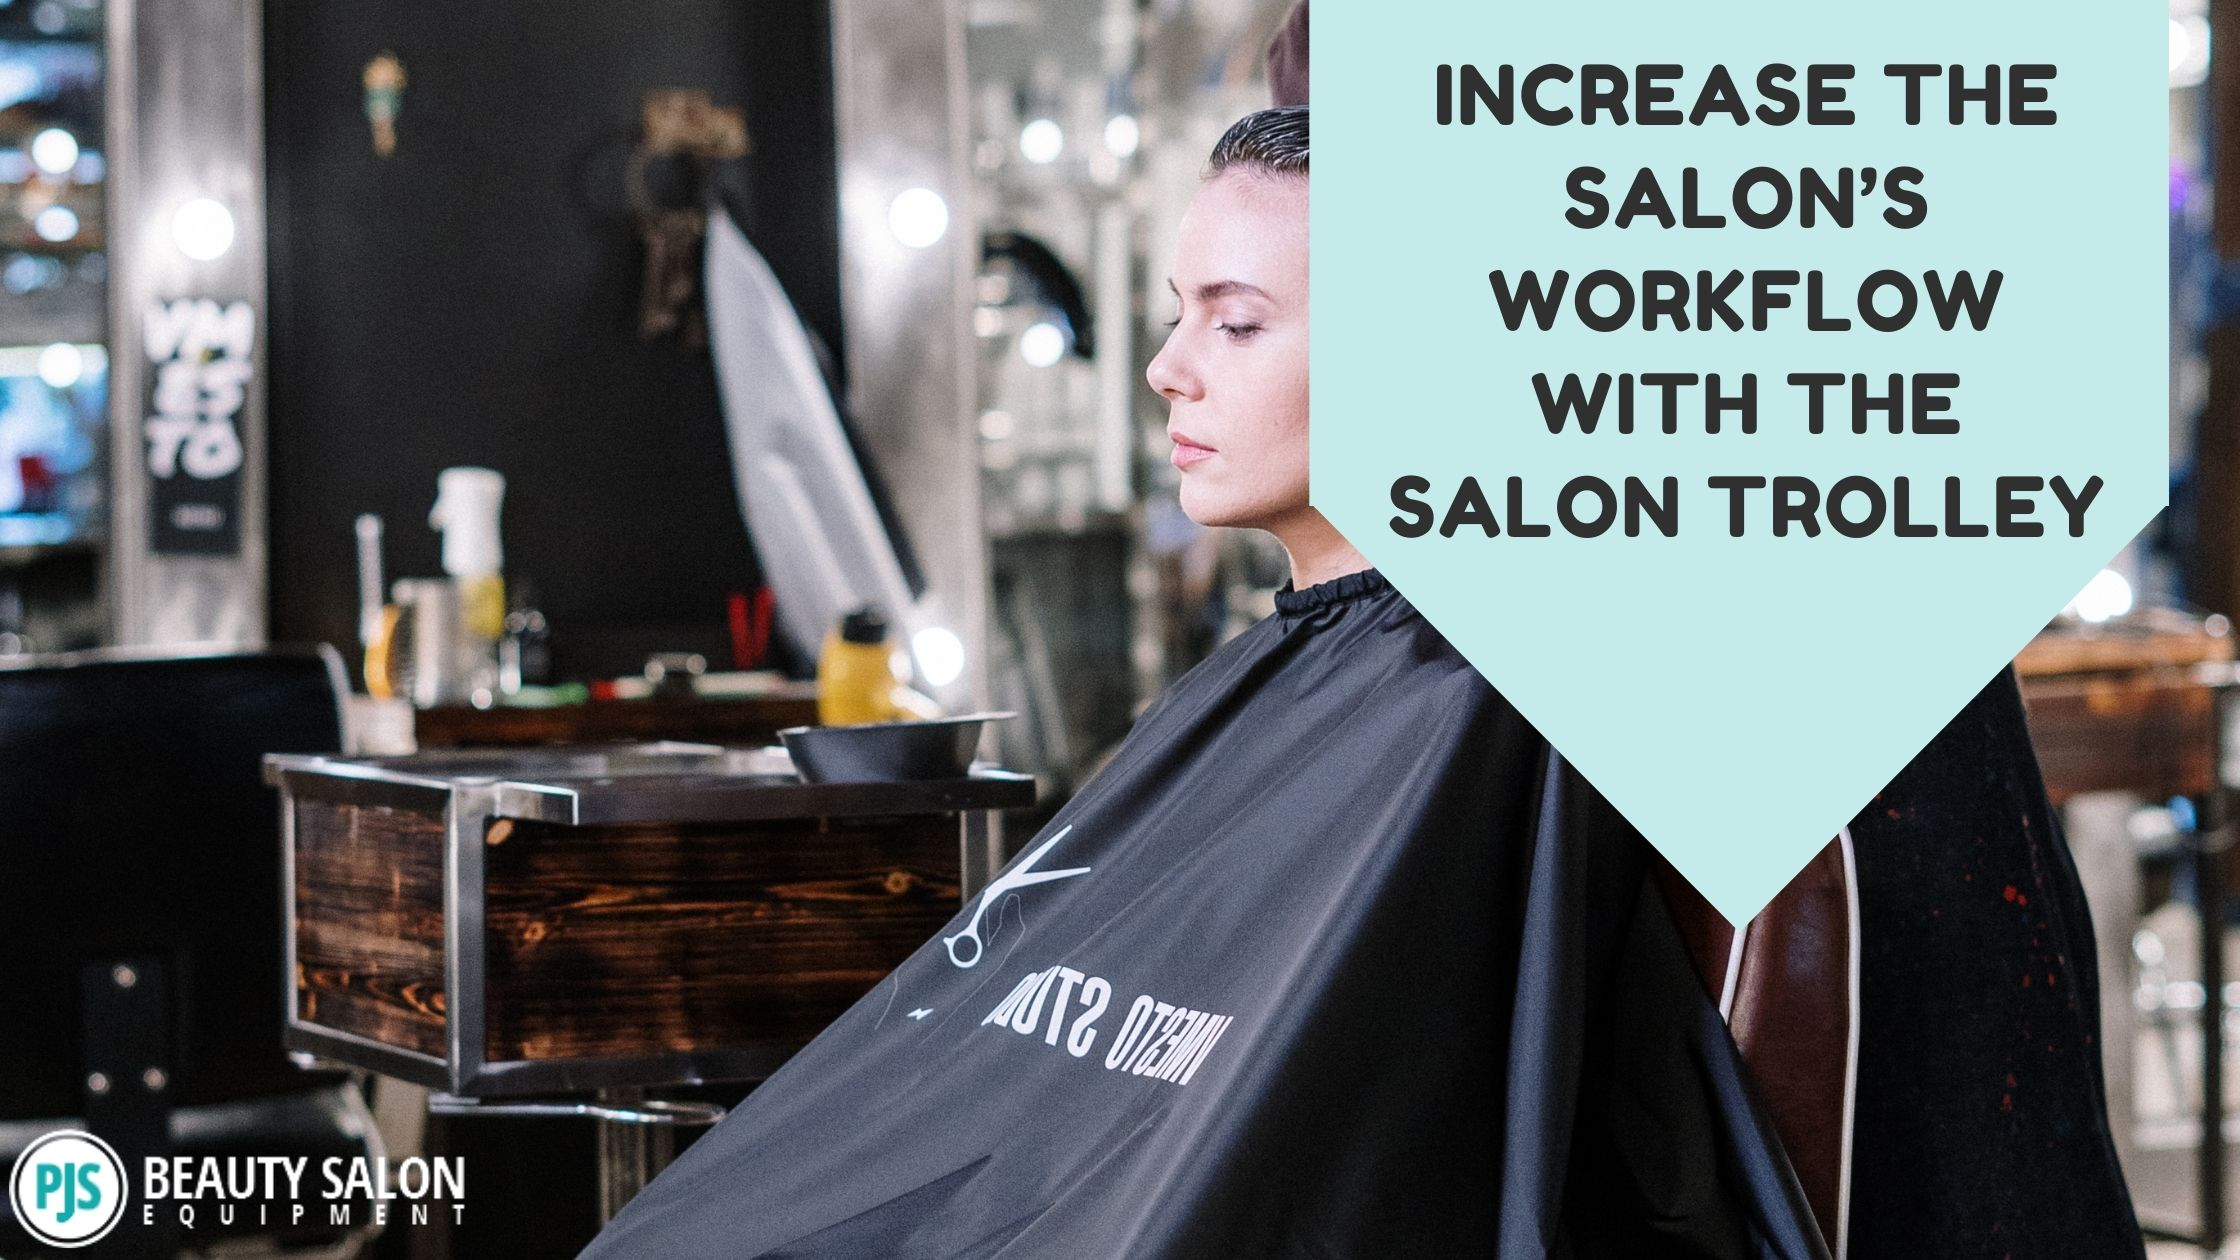 Increase the Salon's Workflow with the Salon Trolley